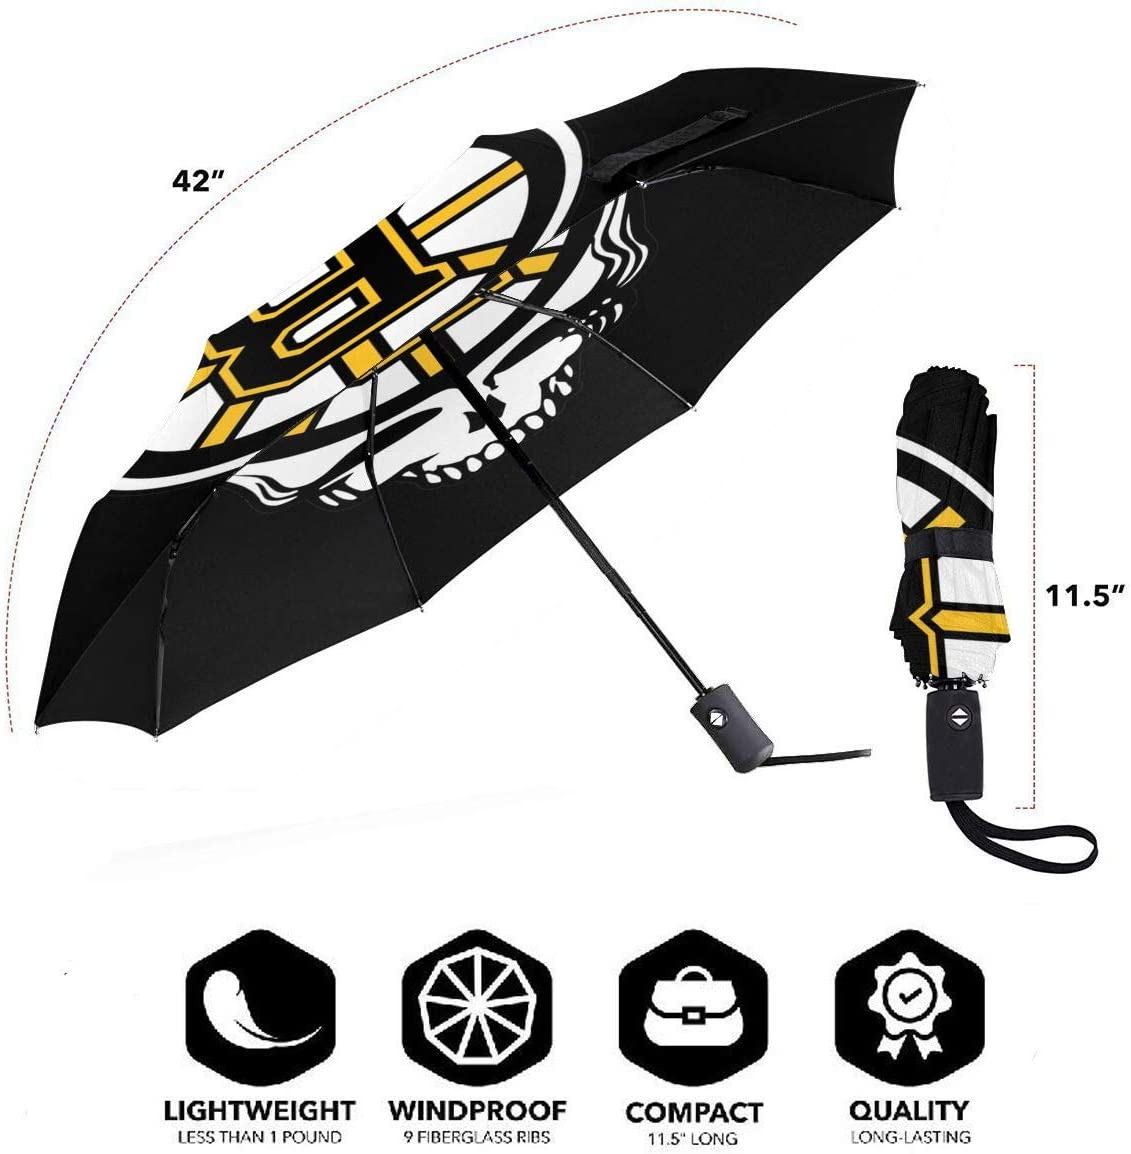 Lovesofun Portable Automatic Umbrella Bos-ton B-Ruins Compact Auto Open Close Folding Business Umbrellas UV Protection Automatic Tri-fold Umbrella for Men and Women